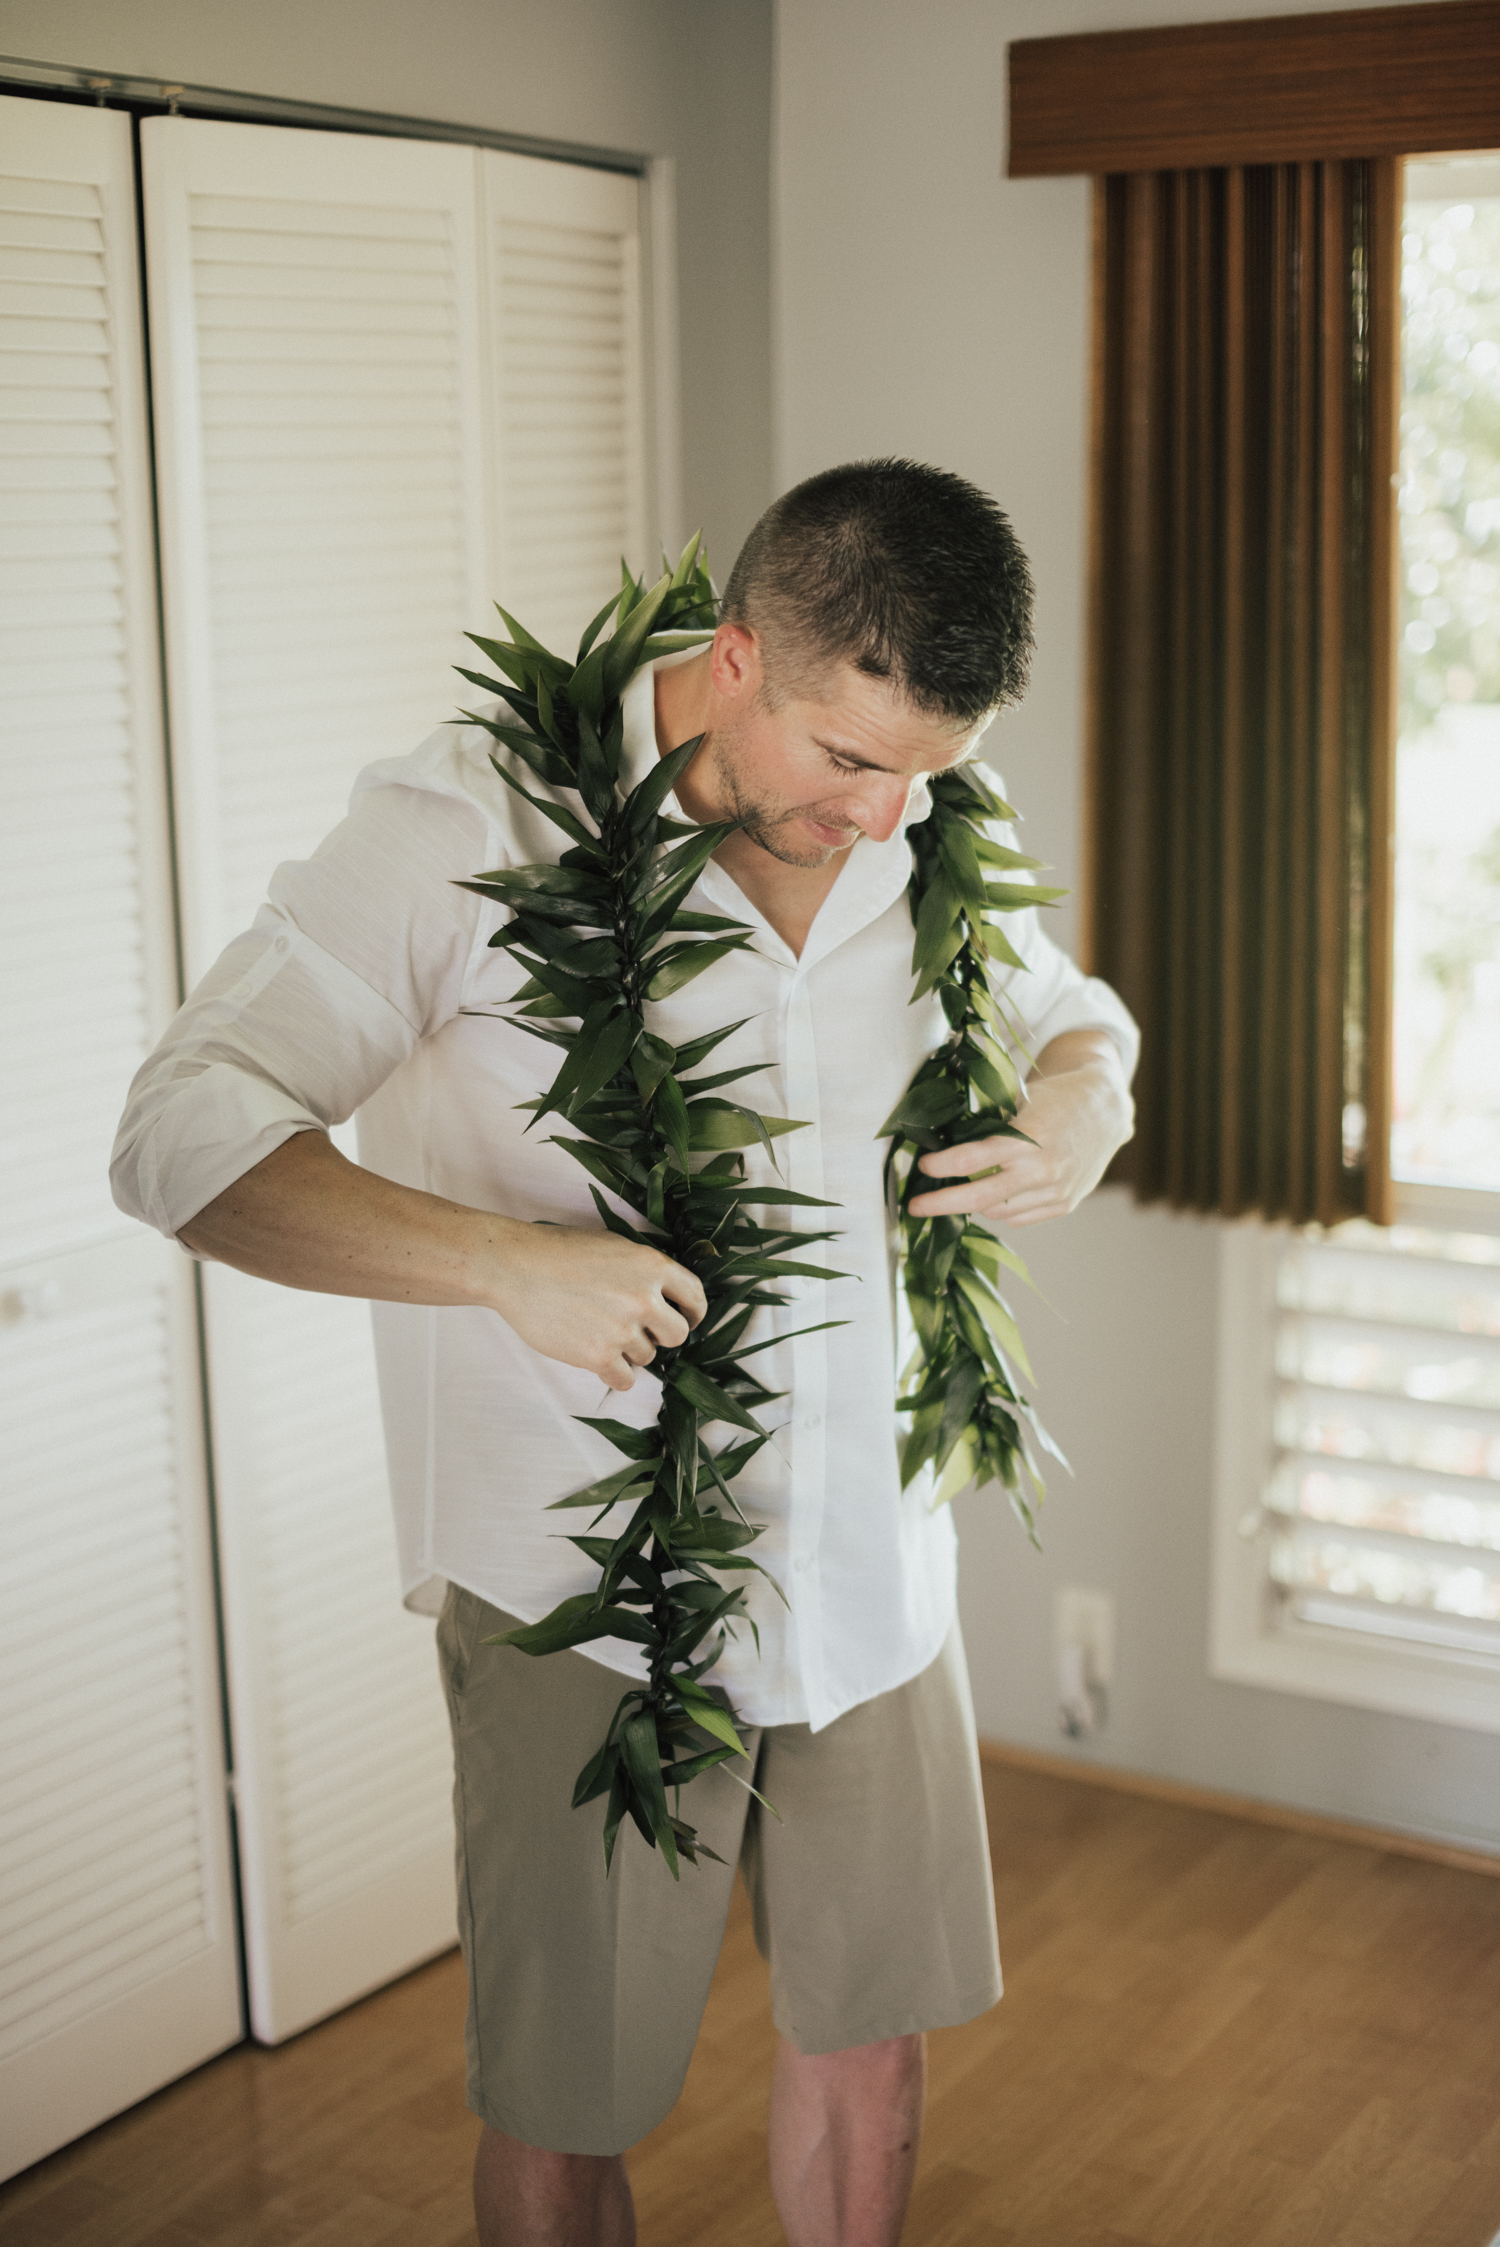 Kauai-elopement-photographer-10.jpg